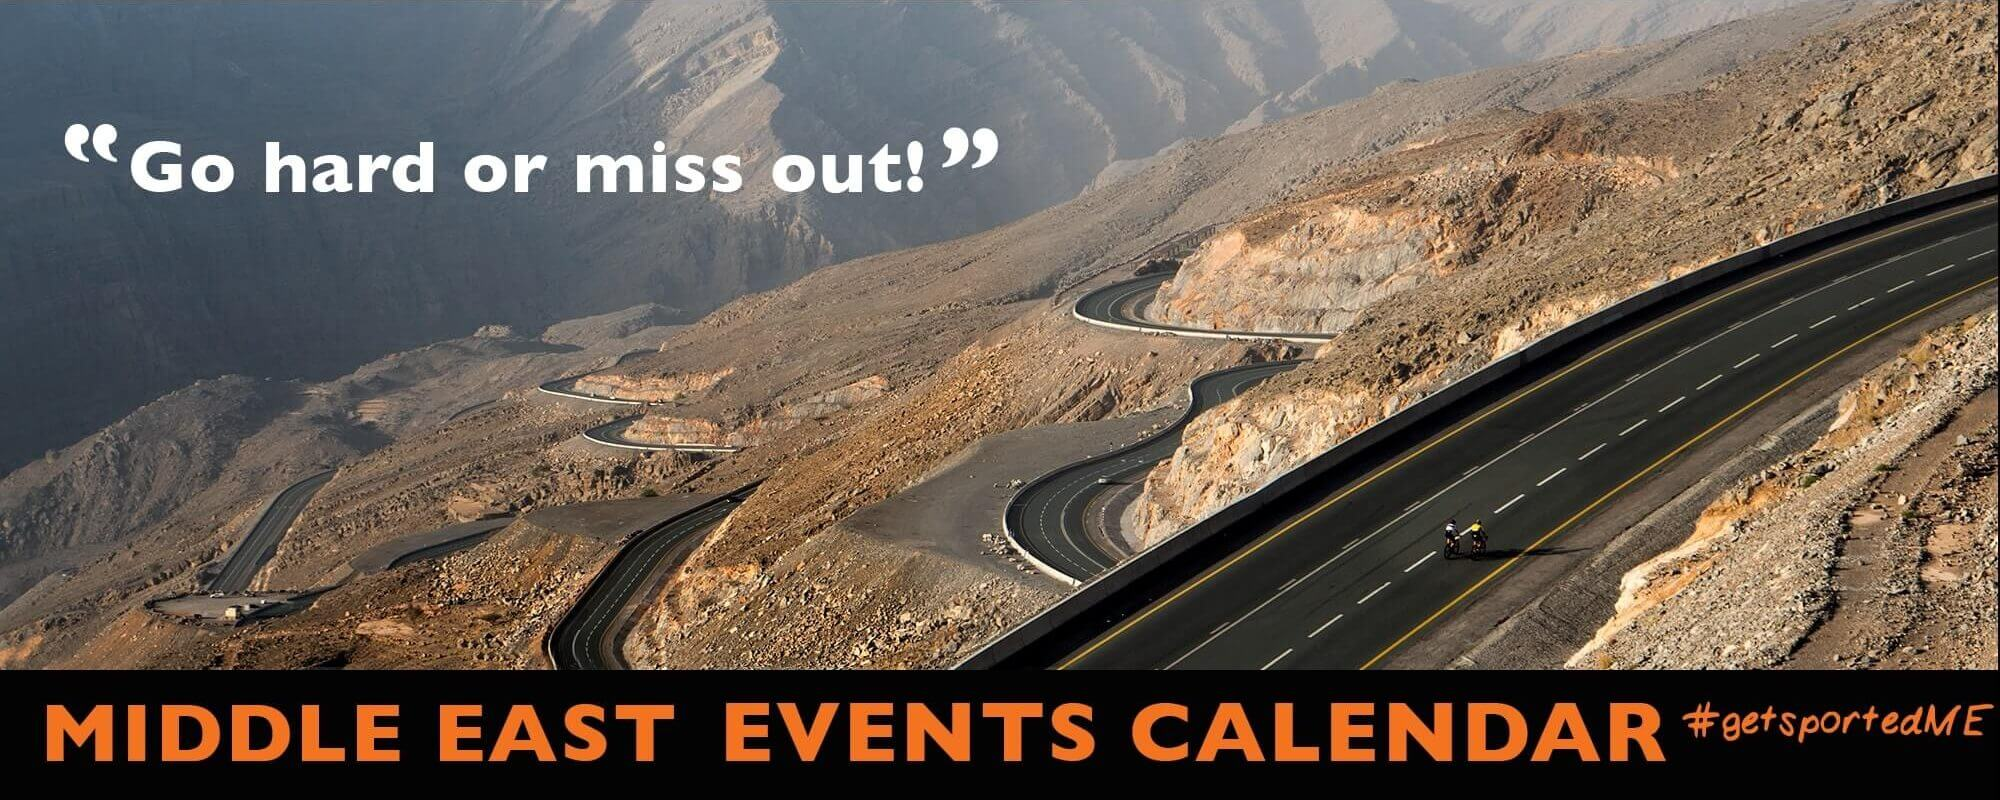 events calendar 2000x800 - What is Sported?